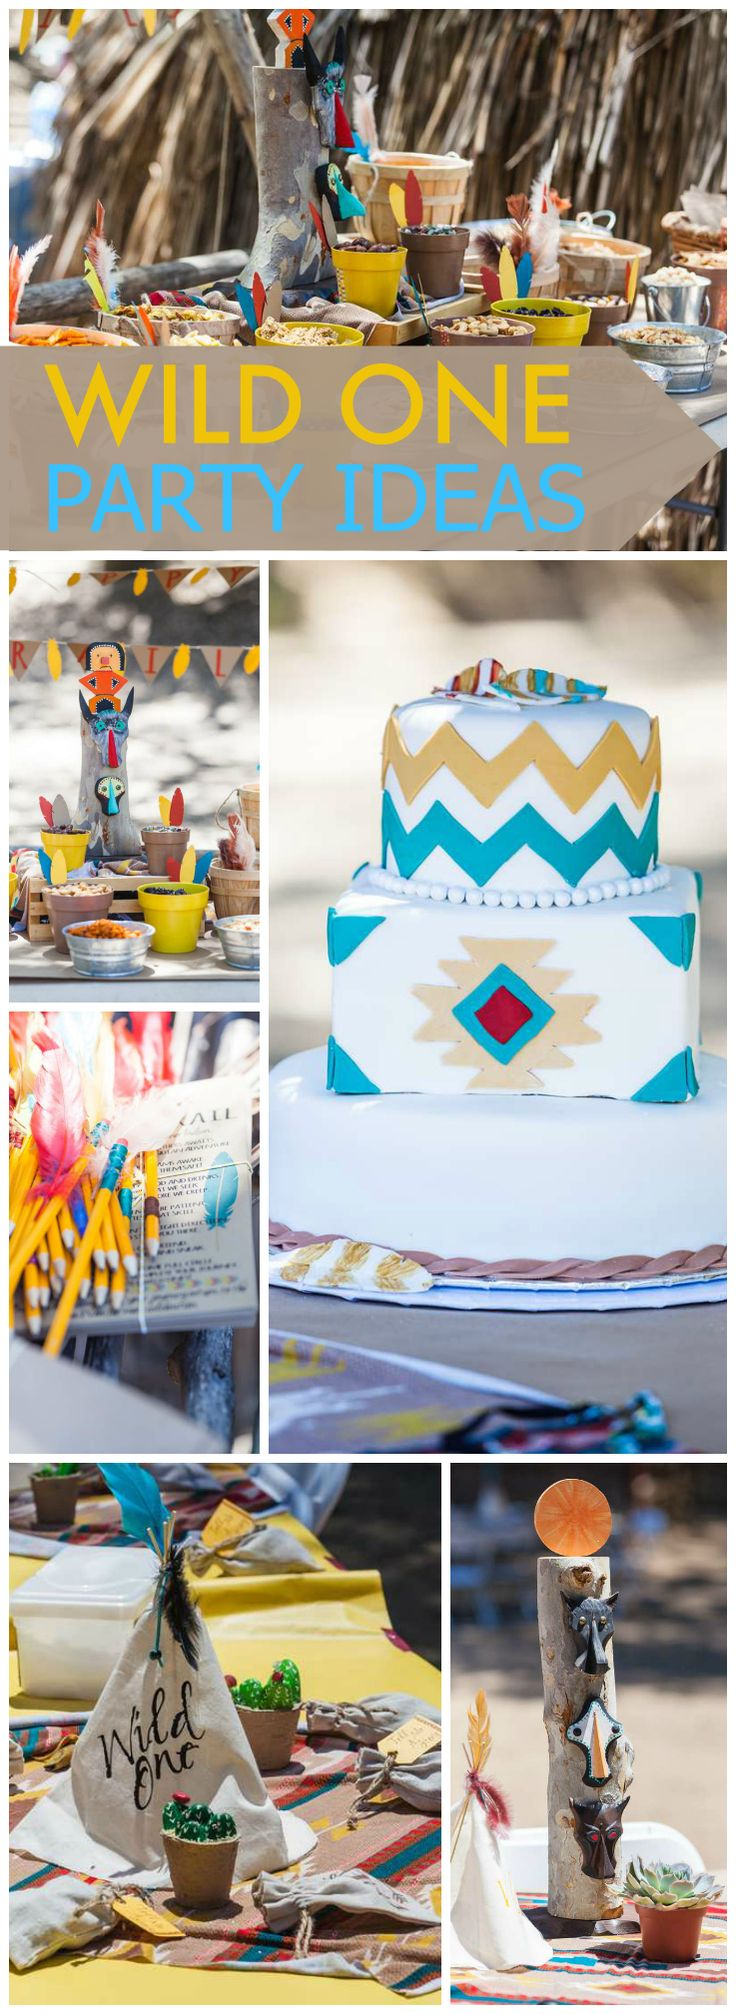 This cool party was held at an Indian Museum and had a trail mix bar! See more party ideas at CatchMyParty.com!